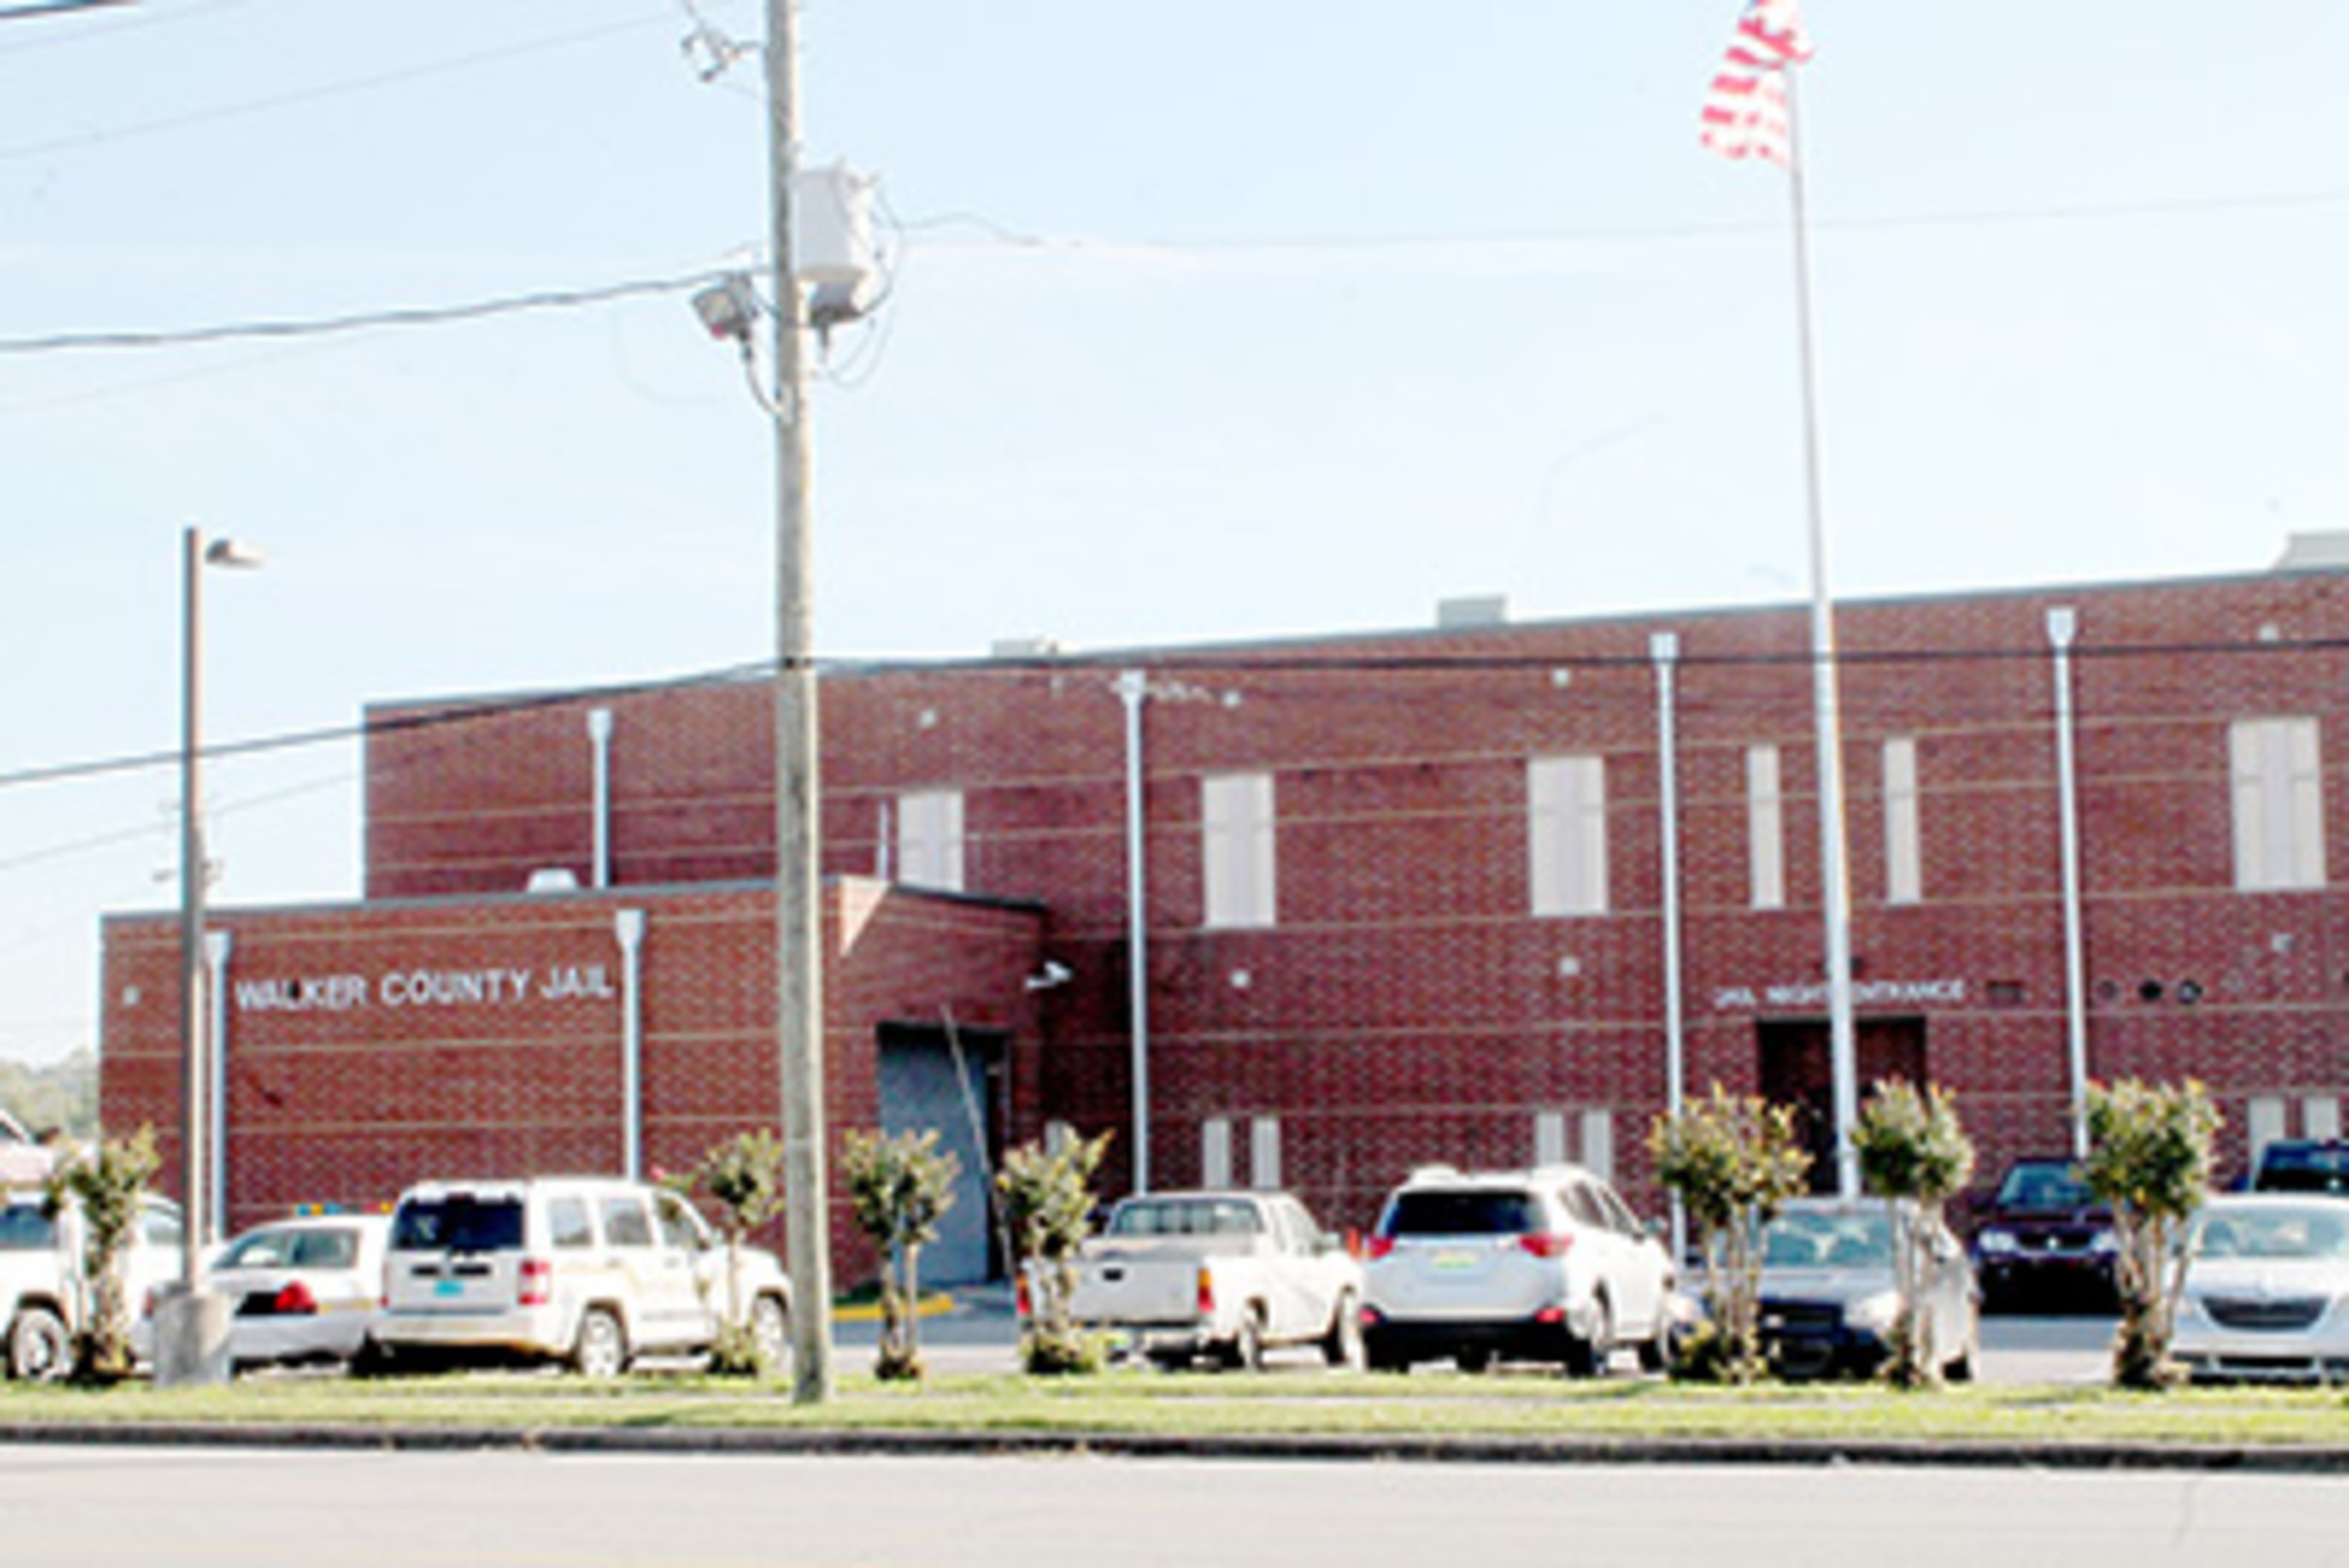 Inmate dies at Walker County Jail | Daily Mountain Eagle